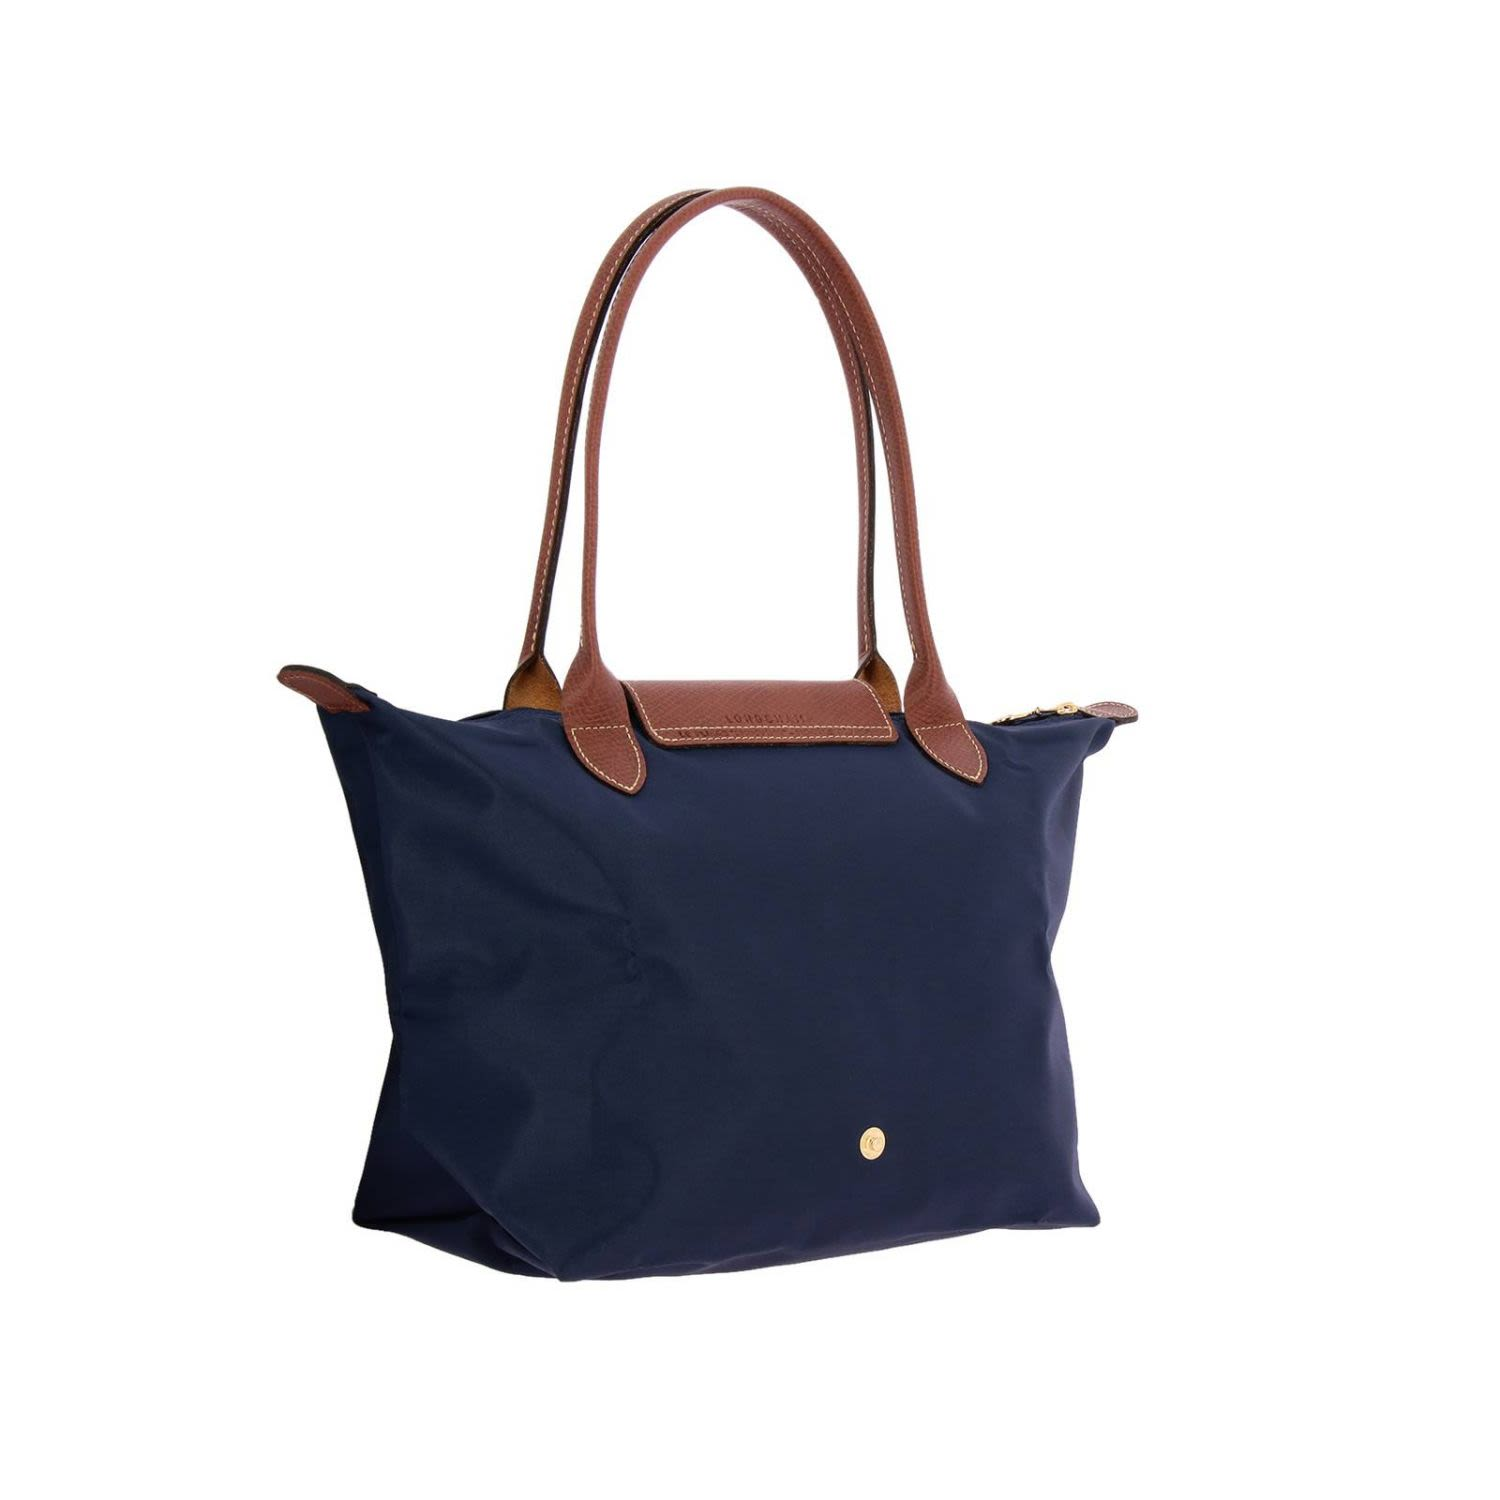 00c8eac6a6 Longchamp Longchamp Shoulder Bag Shoulder Bag Women Longchamp - blue ...